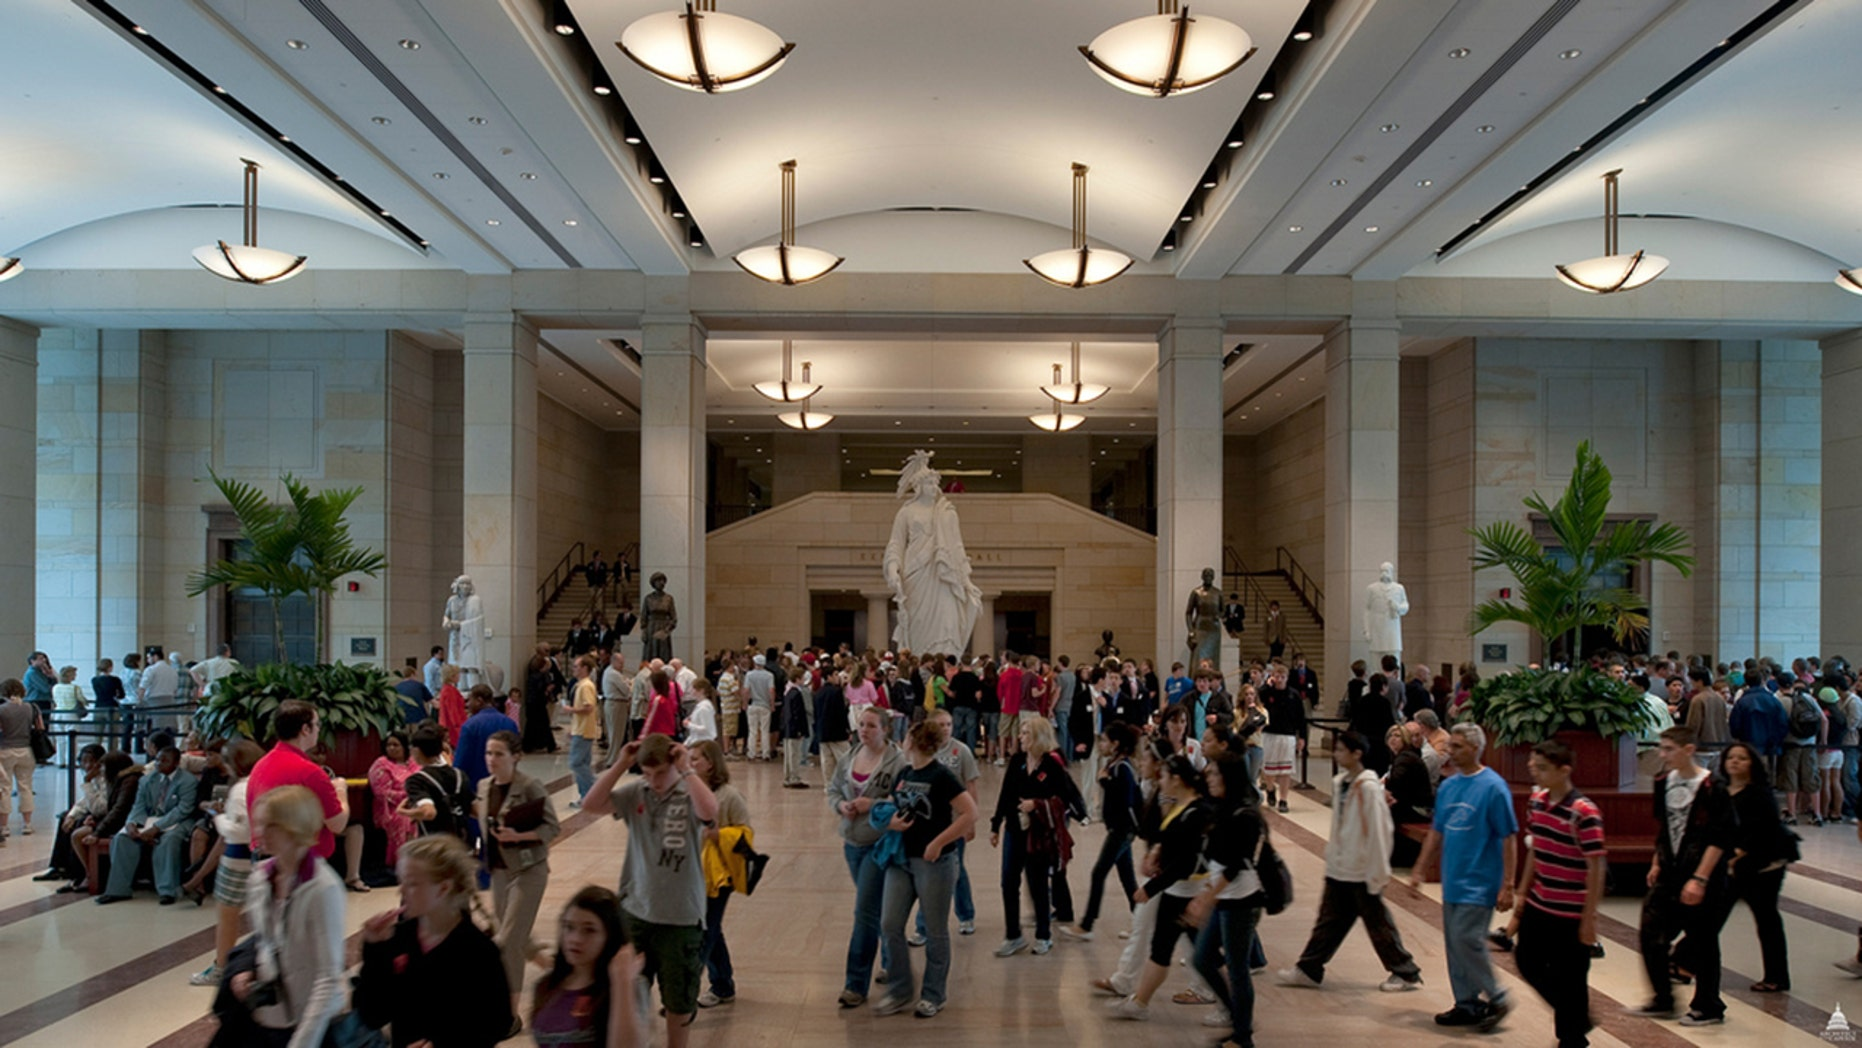 A U.S. Capitol police officer reportedly left his pistol inside a bathroom at its Visitor Center earlier this week. (Architect of the Capitol)